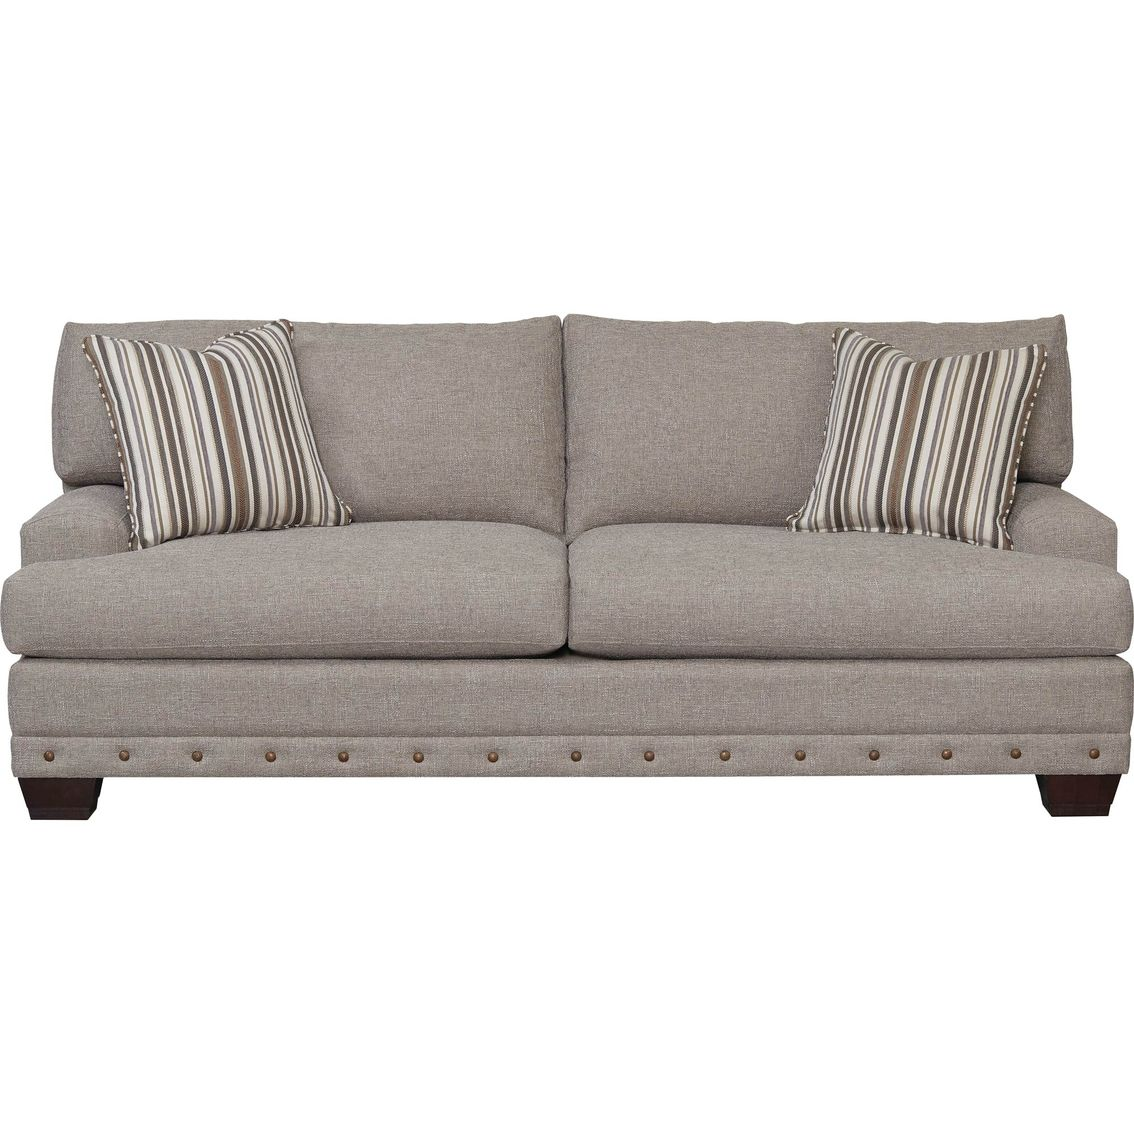 stunning sofas and loveseats photo-Awesome sofas and Loveseats Design